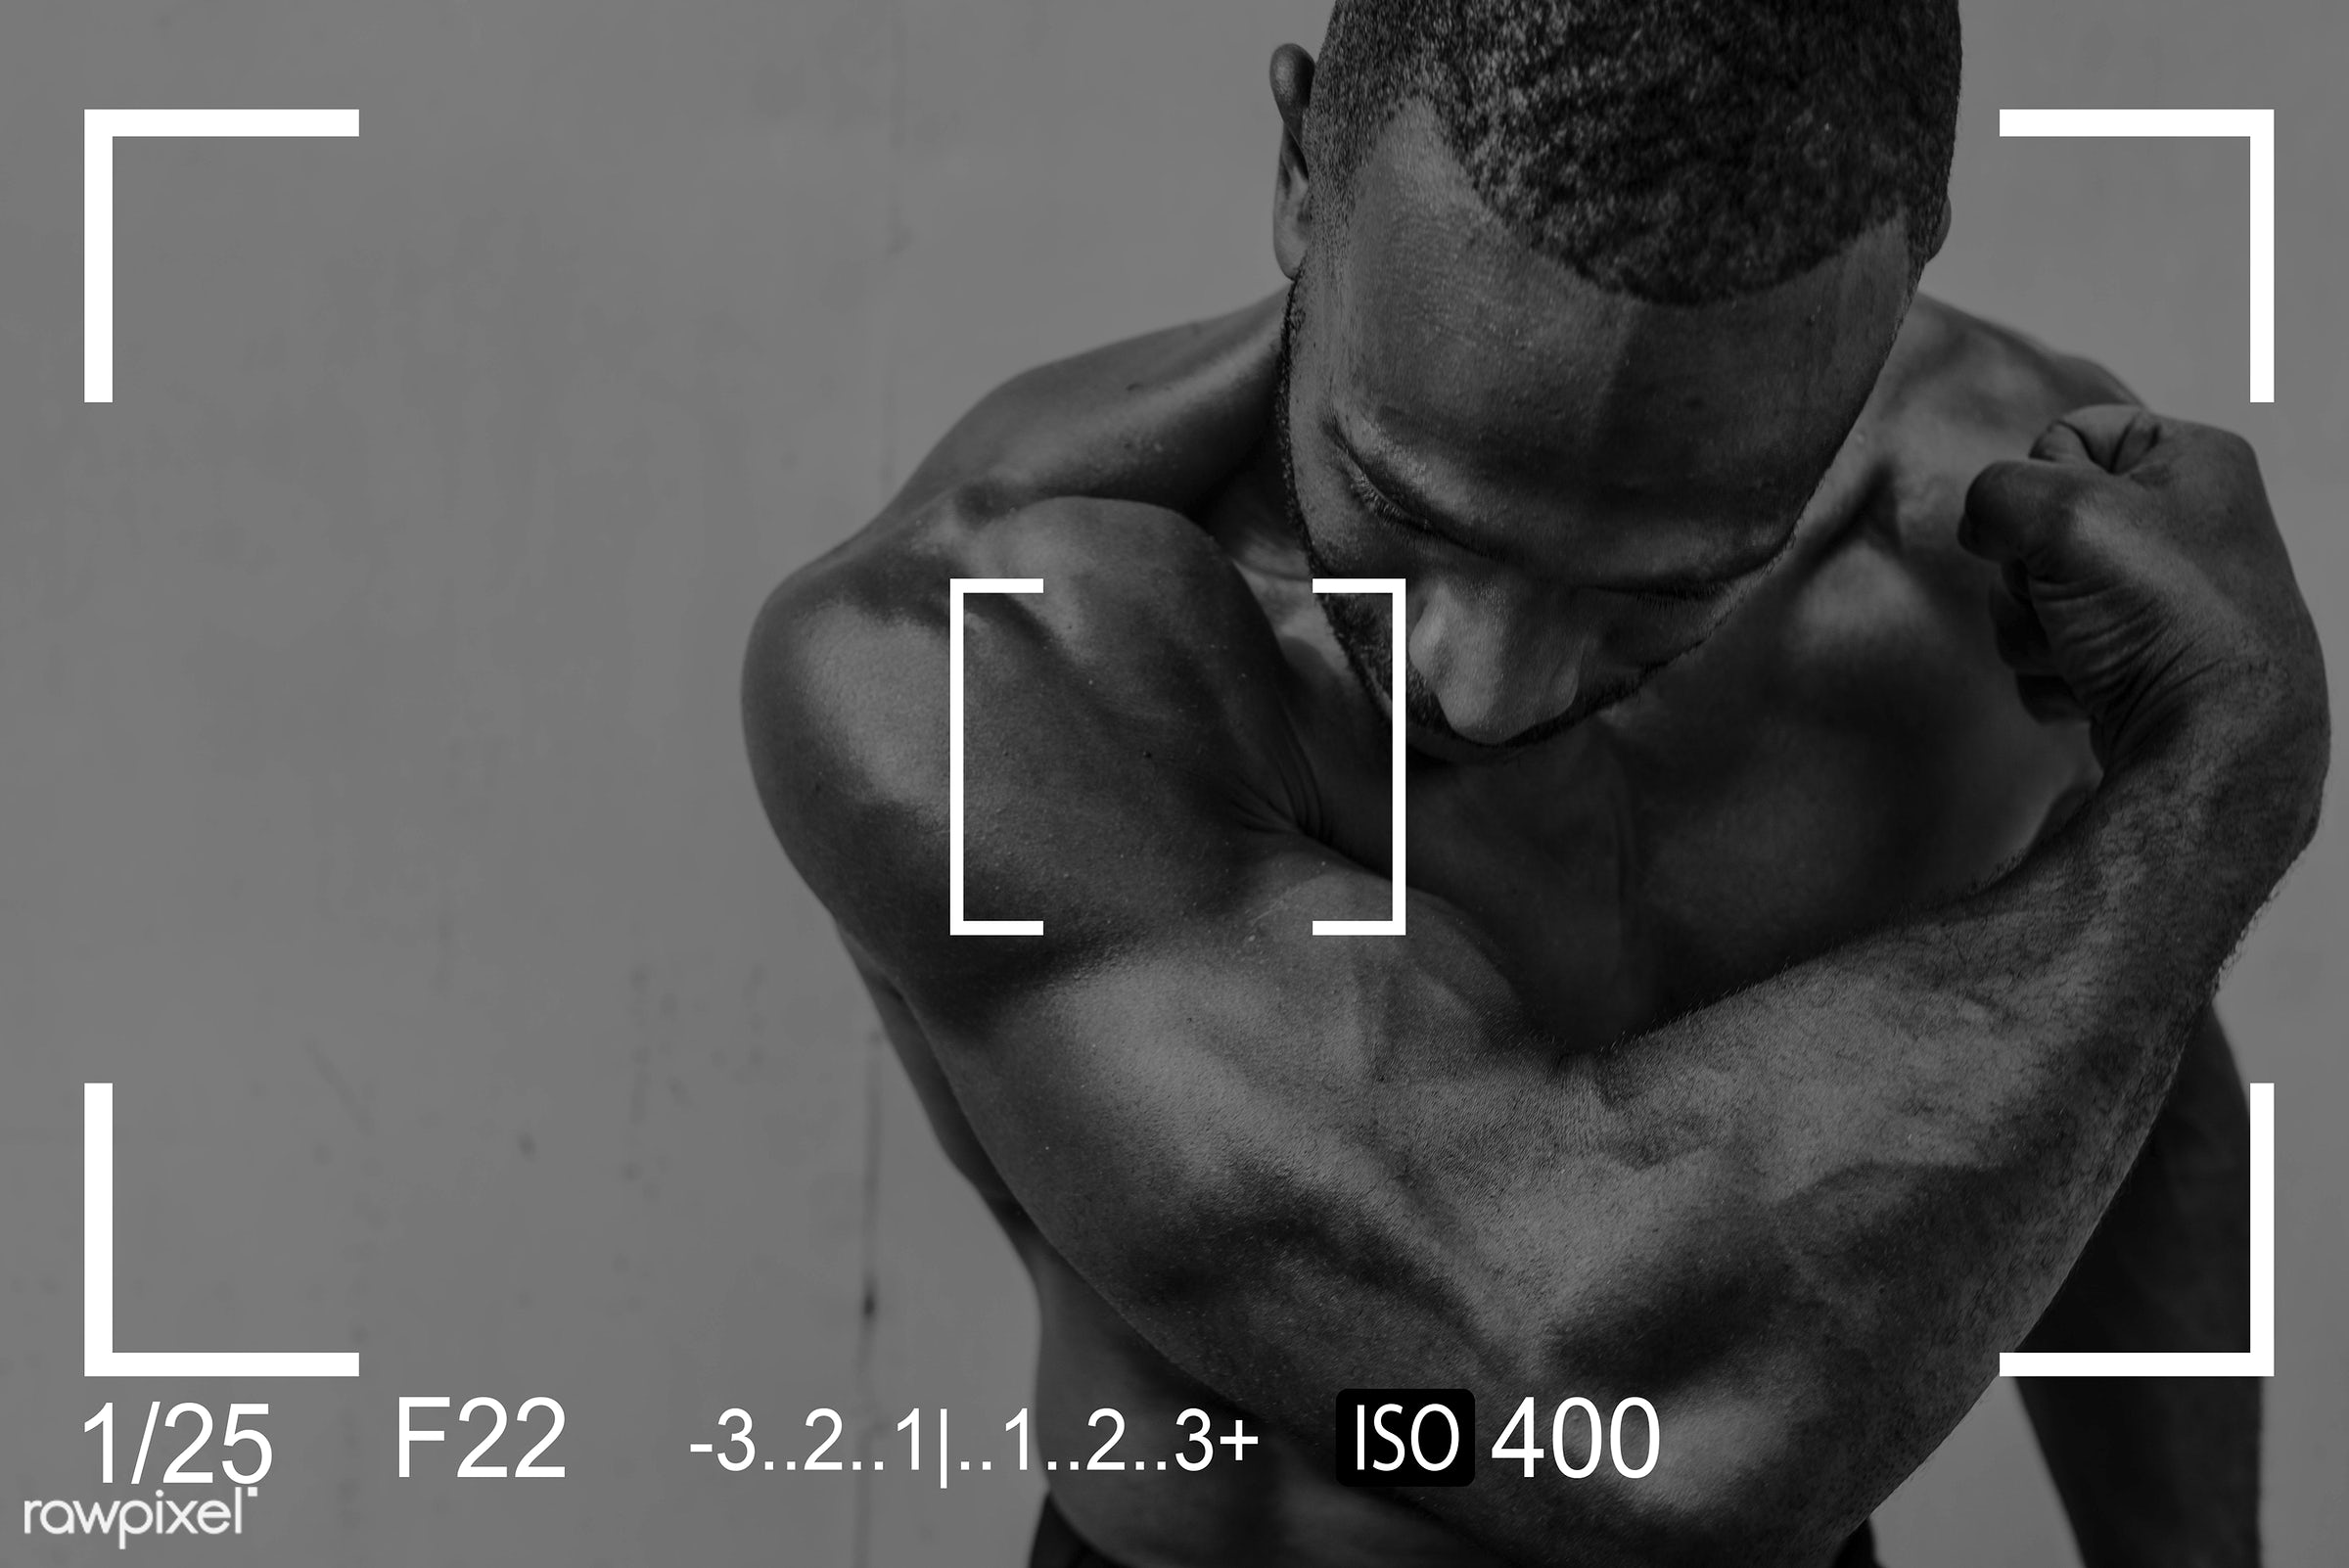 abs, adult, african descent, arms, be strong, bestro, biceps, blank, body, bodybuilder, camera, copy space, fitness, focus,...